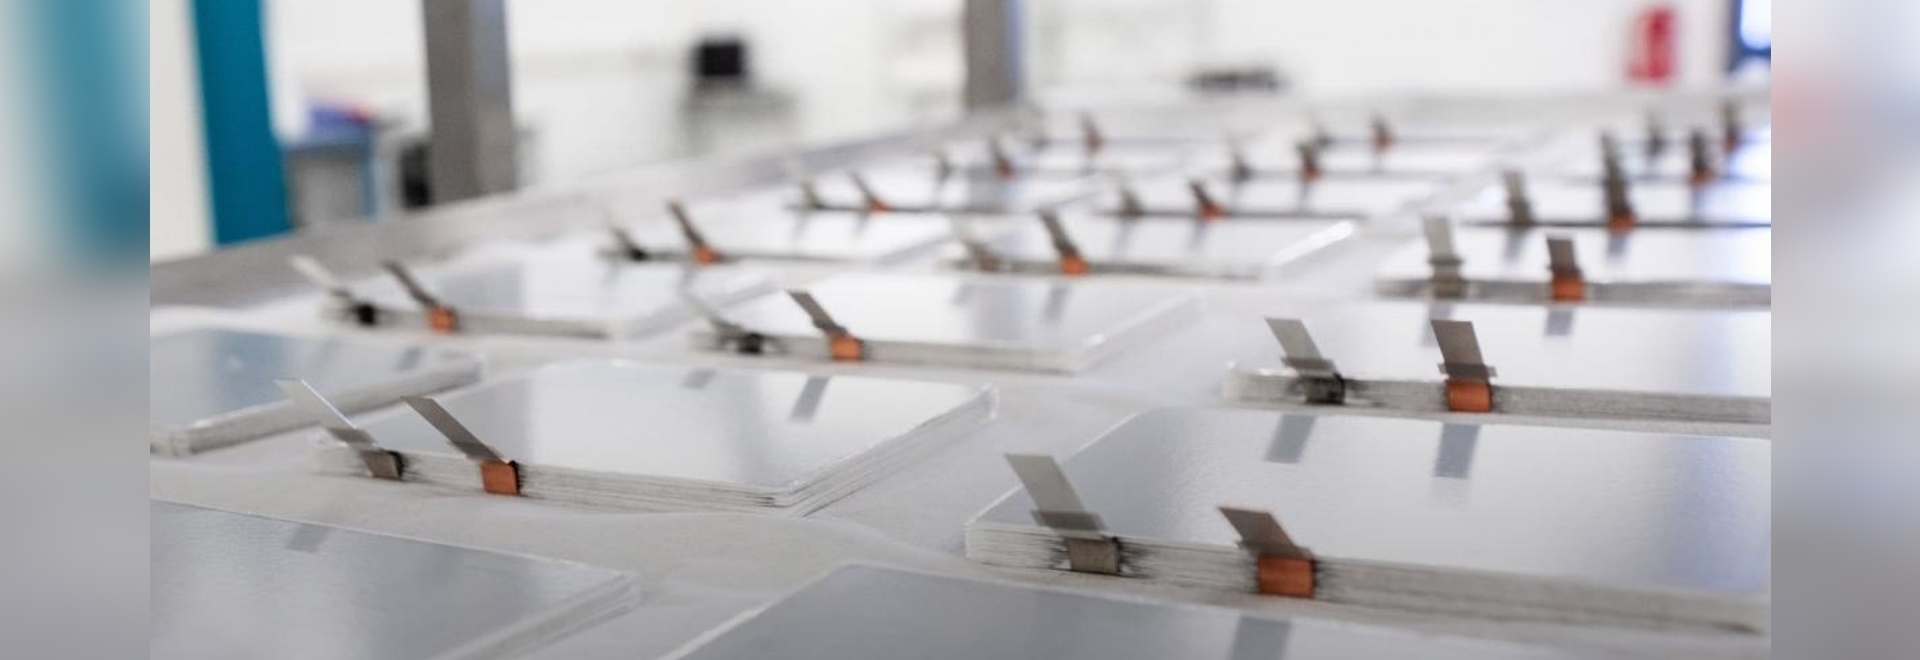 Lilium partners with CUSTOMCELLS to produce high-performance silicon-anode batteries for the 7-Seater Lilium Jet